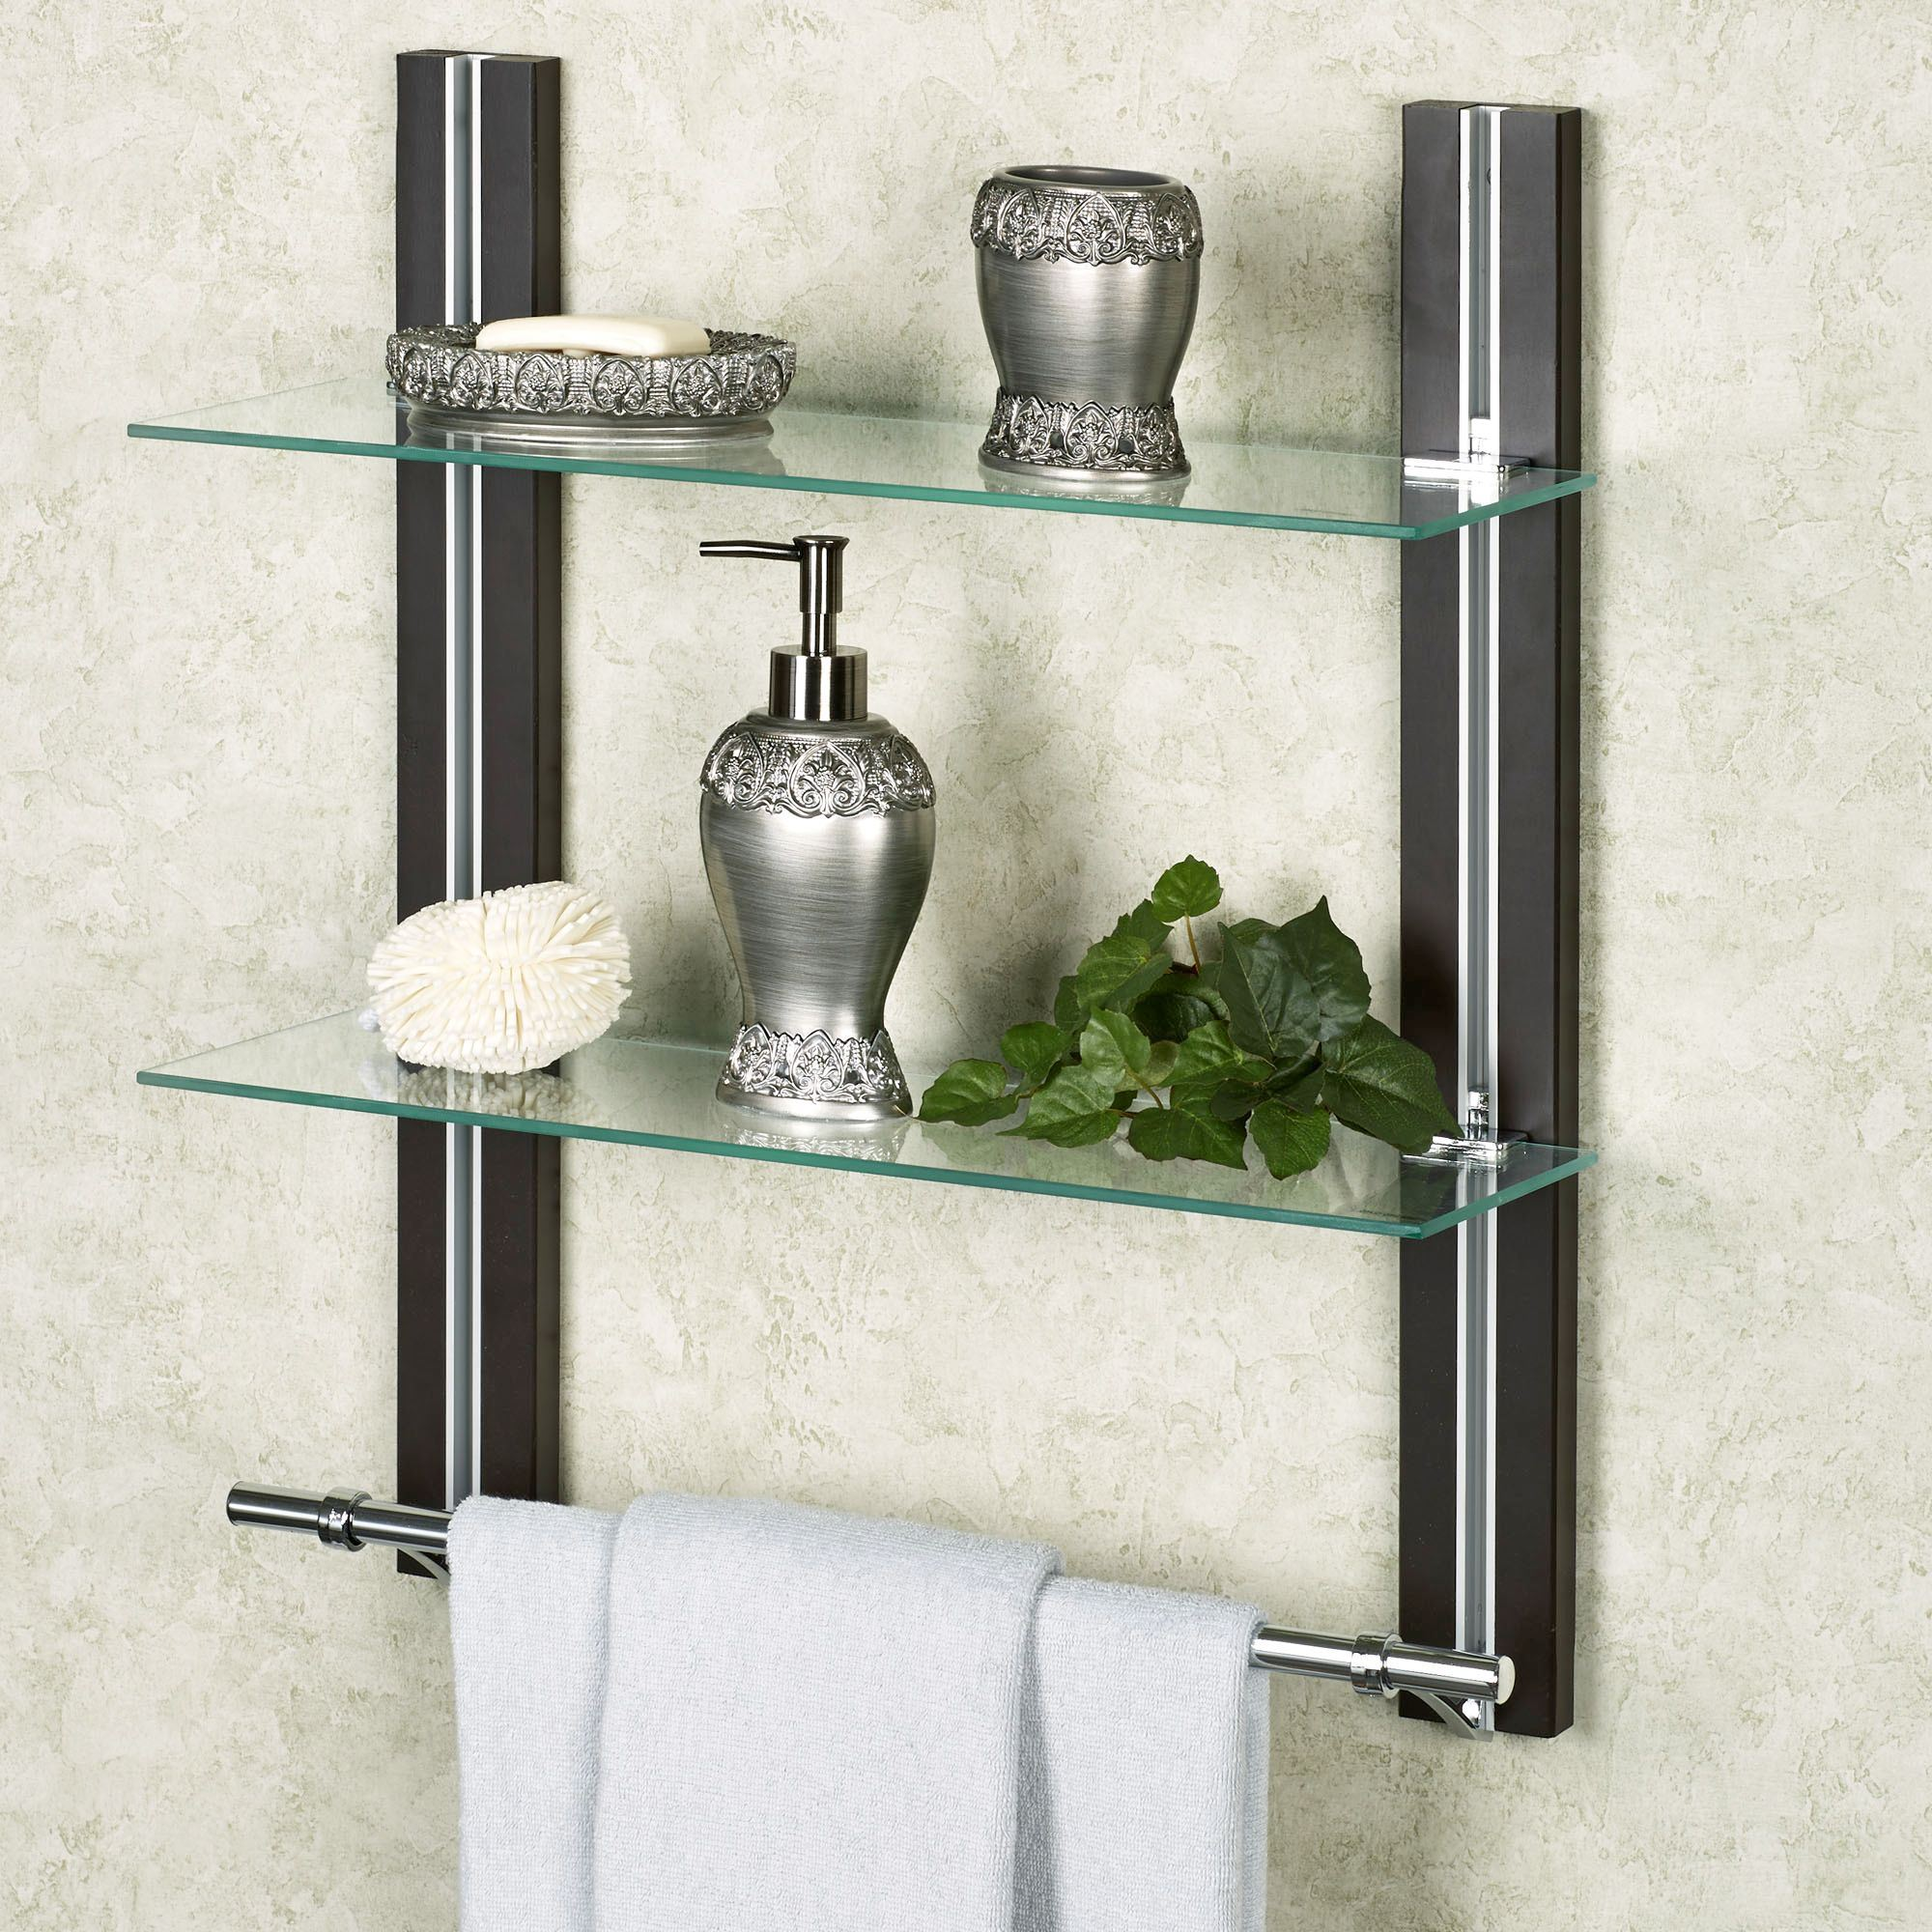 Shelf With Towel Bar Espresso Touch To Zoom